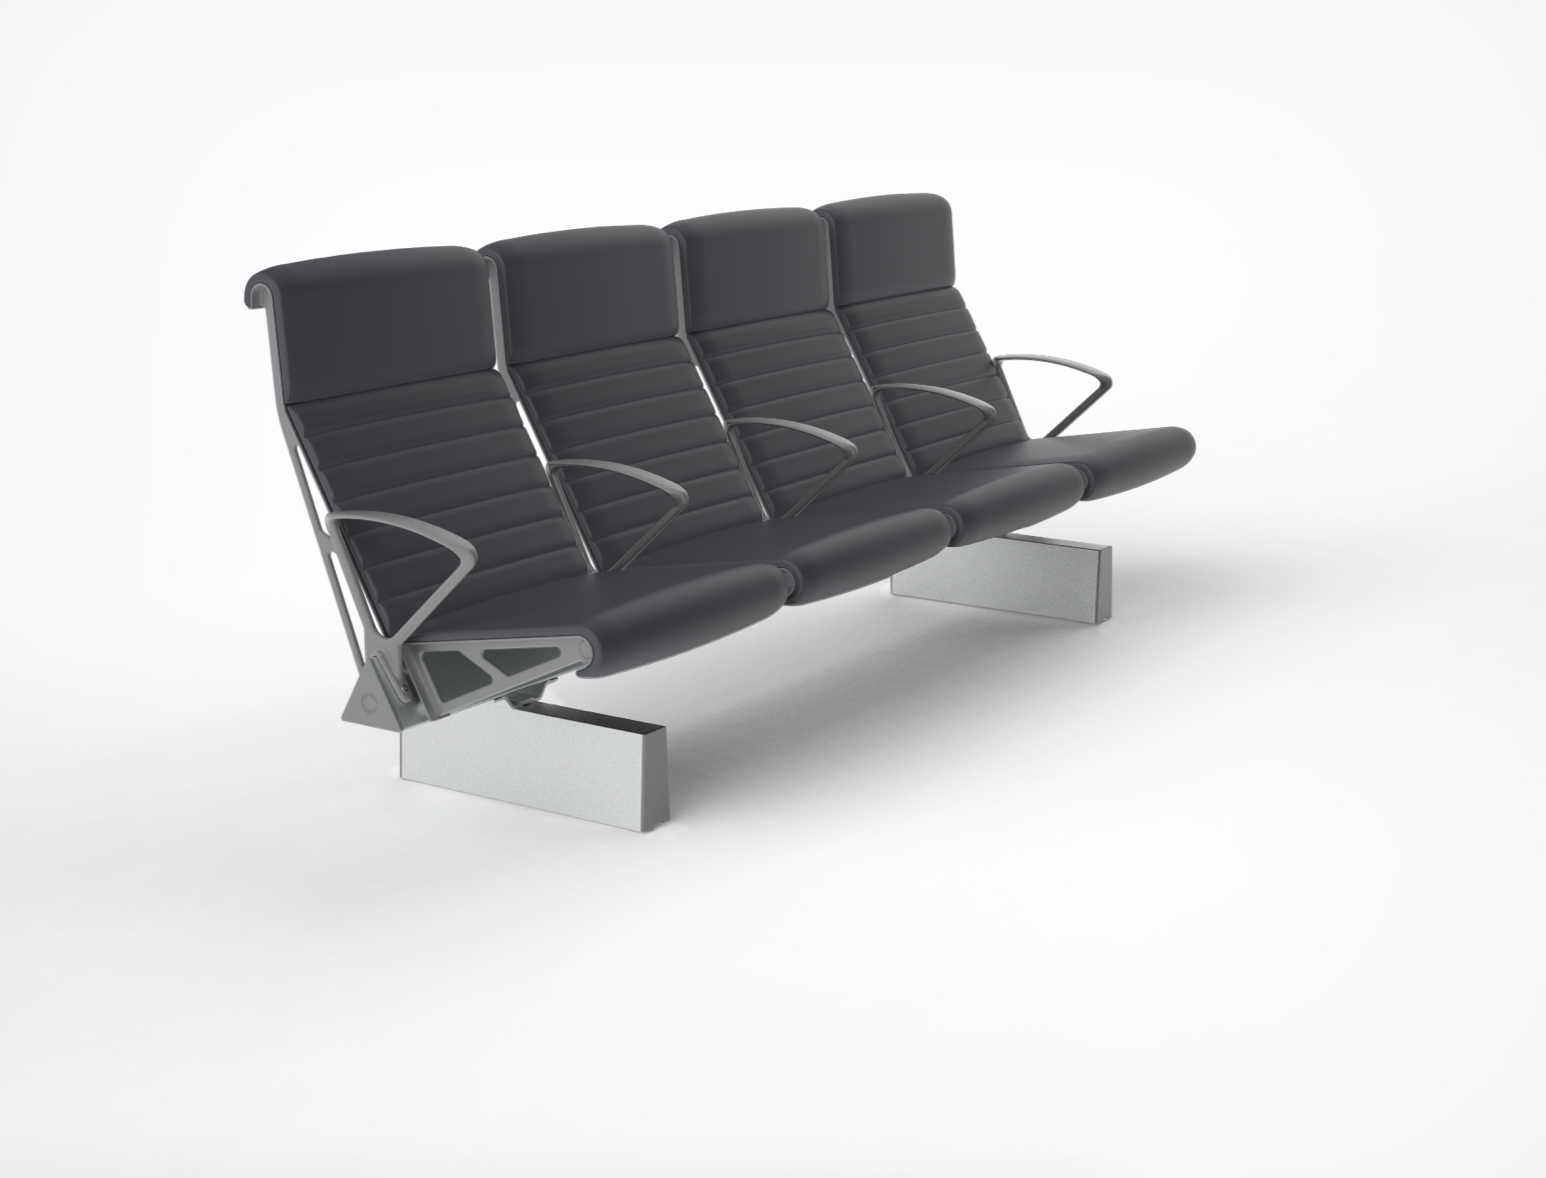 Trax - High Back, fully upholstered with arms throughout and extruded foot